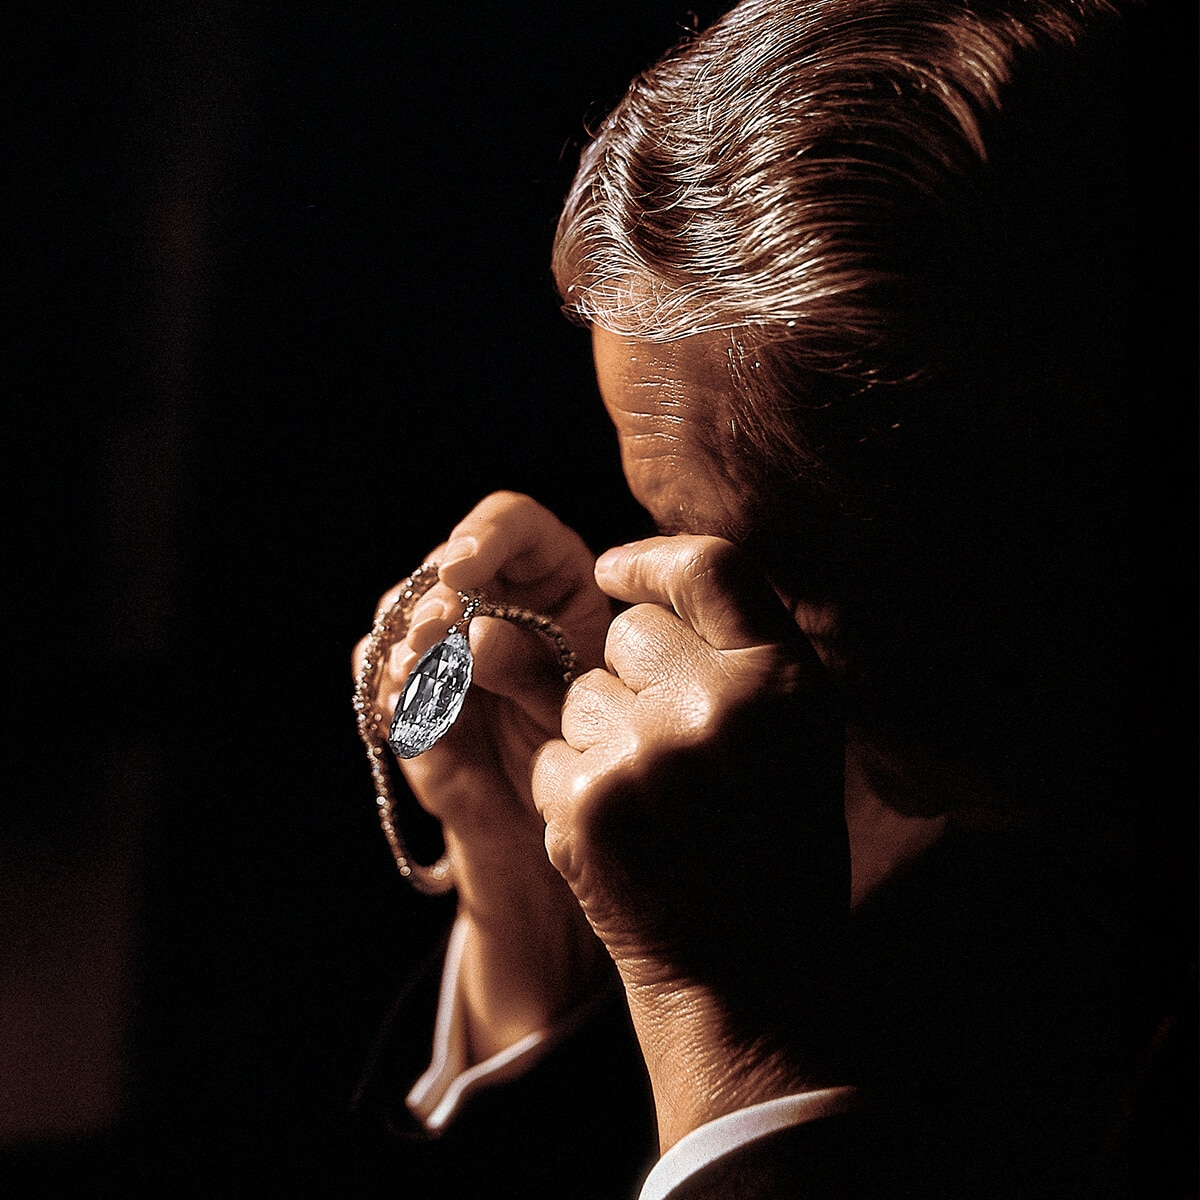 Mr. Harry Winston with a D-color briolette-shaped diamond weighting 90.38 carats